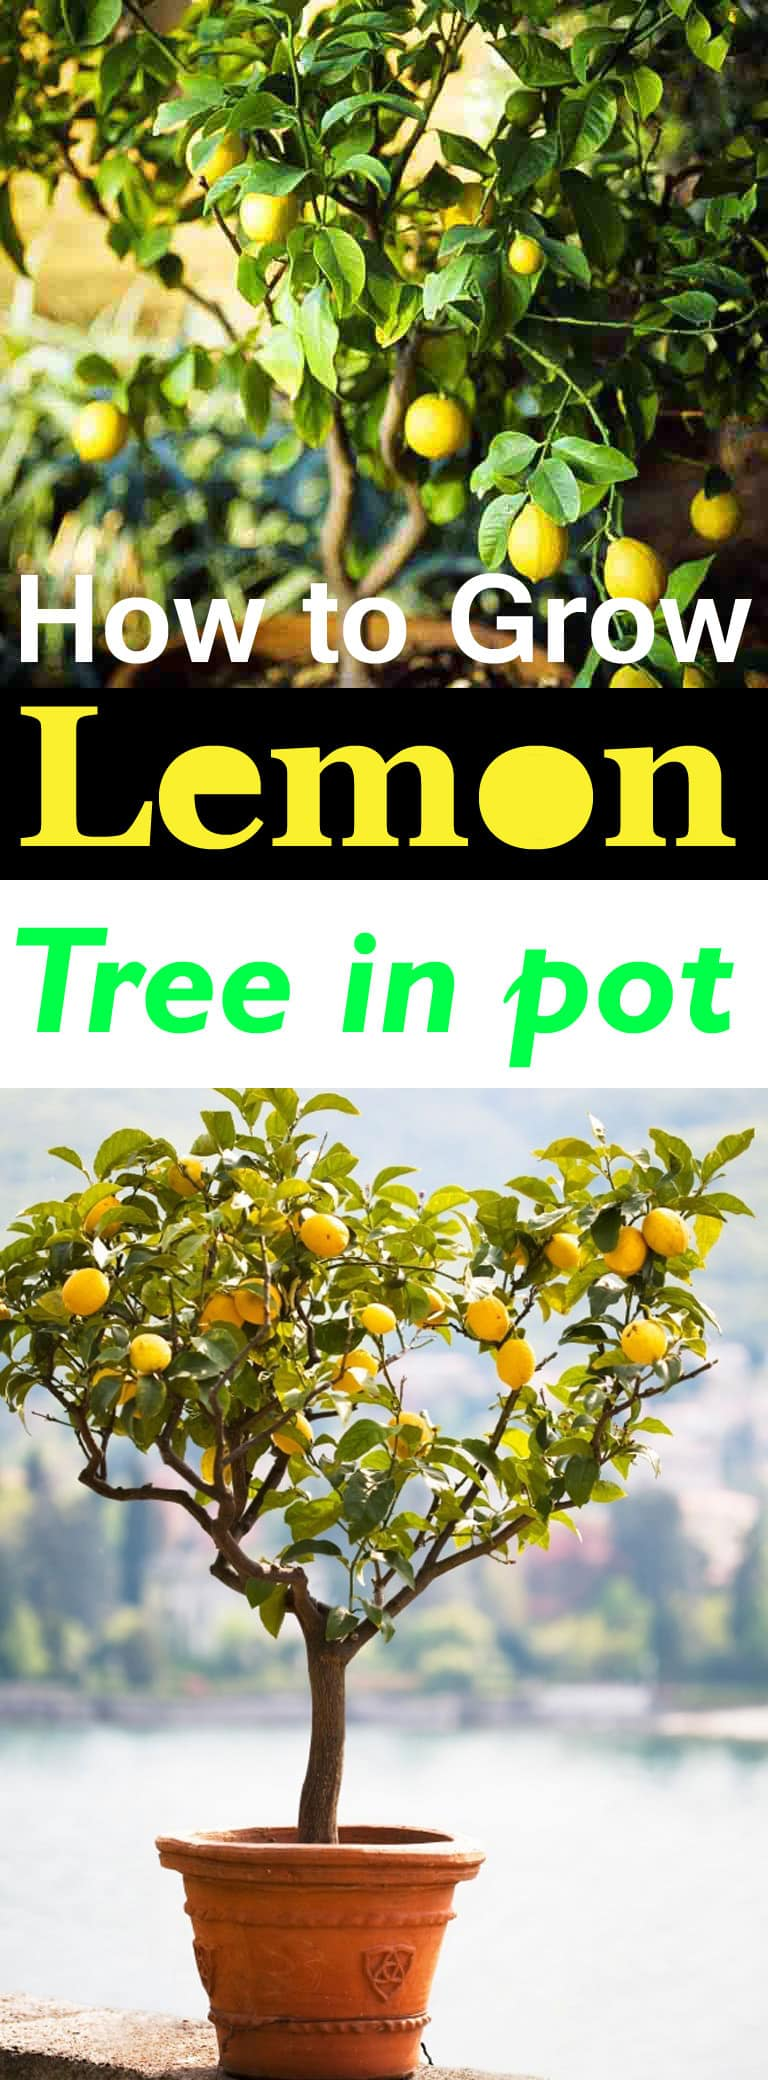 How to grow a lemon tree in pot care and growing Planting lemon seeds for smell